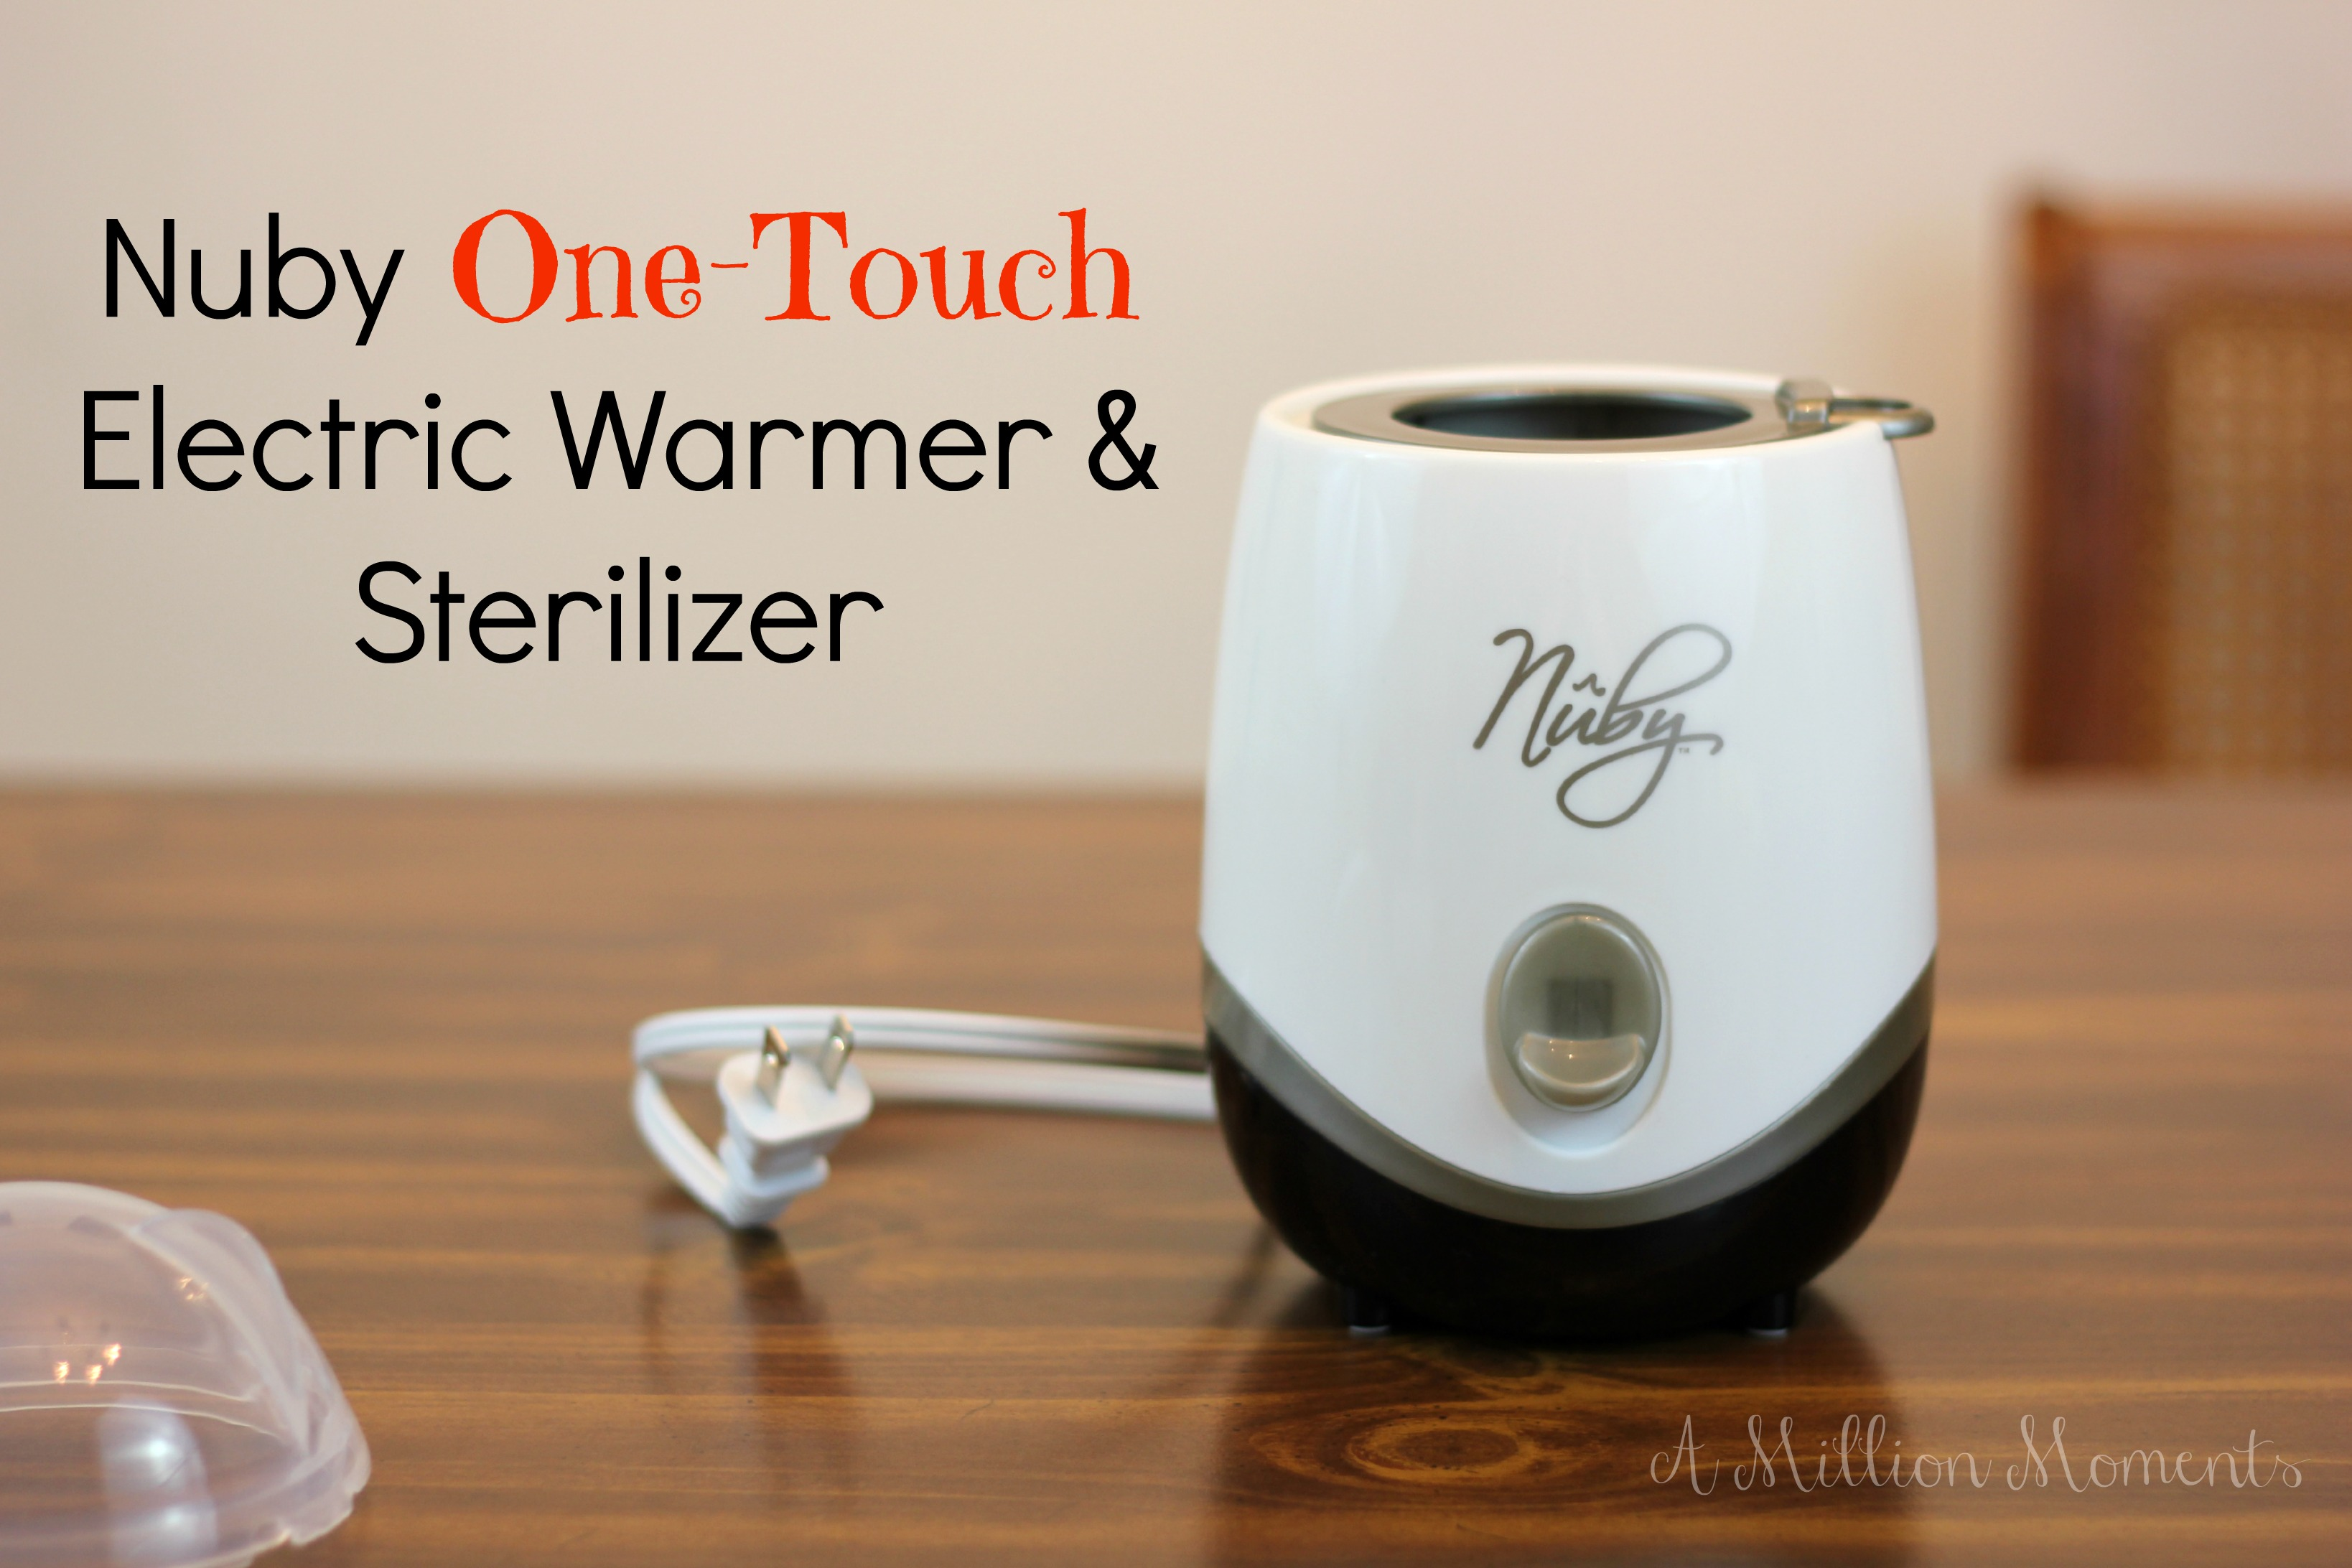 Nuby One-Touch Electric Warmer & Sterilizer – A Dad's Best Friend